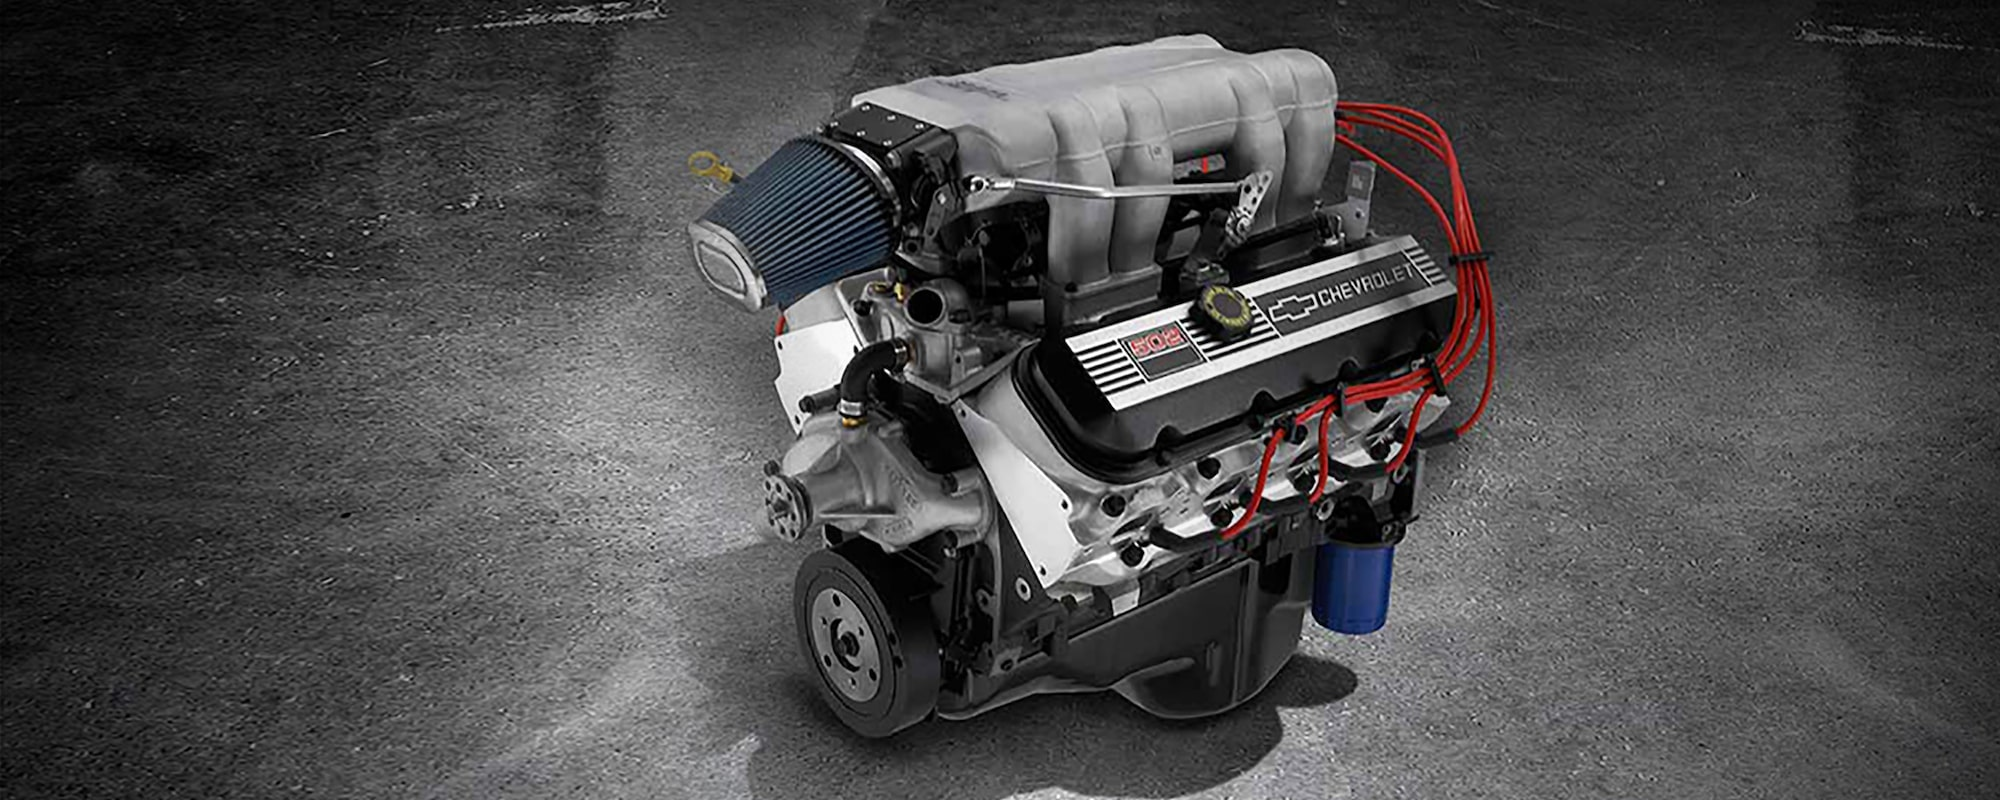 ram jet 502 big block crate engine chevrolet performance 1988 chevy truck wiring diagrams $250 mail in rebate\u2020(1) on all lt, ls, lsx, and big block chevrolet performance crate engines